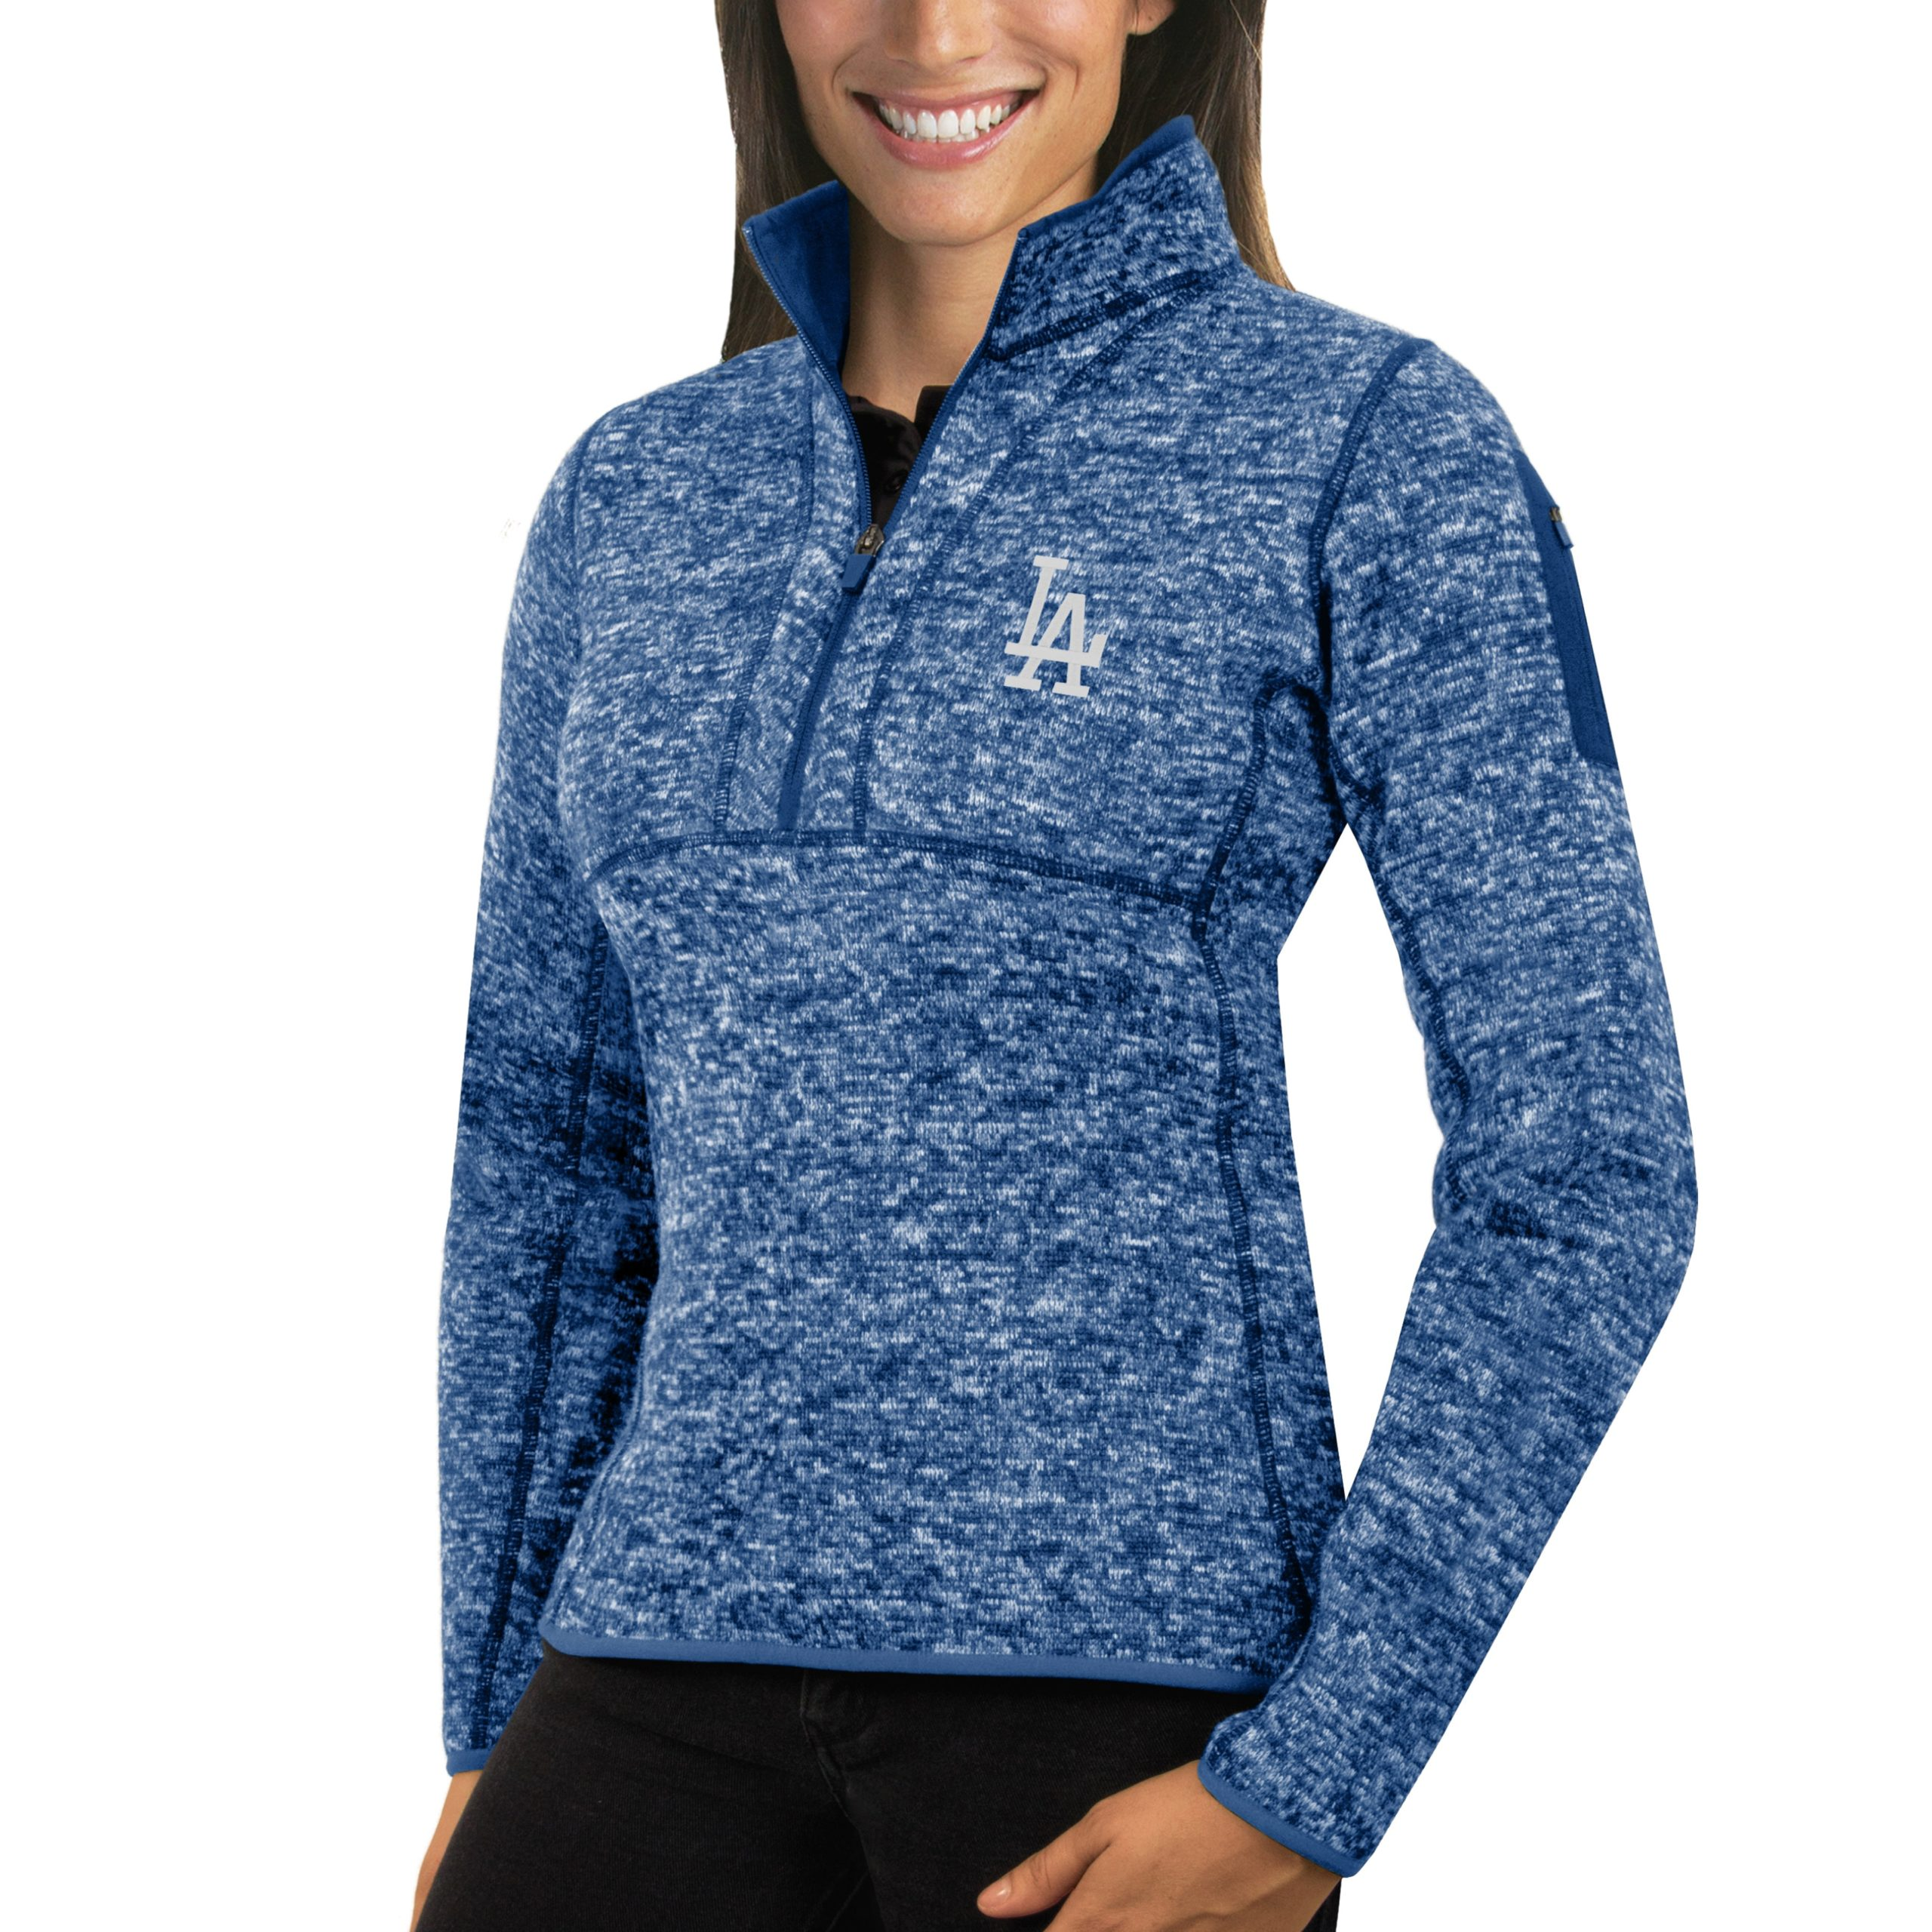 Los Angeles Dodgers Antigua Women's Fortune Half-Zip Pullover Sweater - Heathered Royal